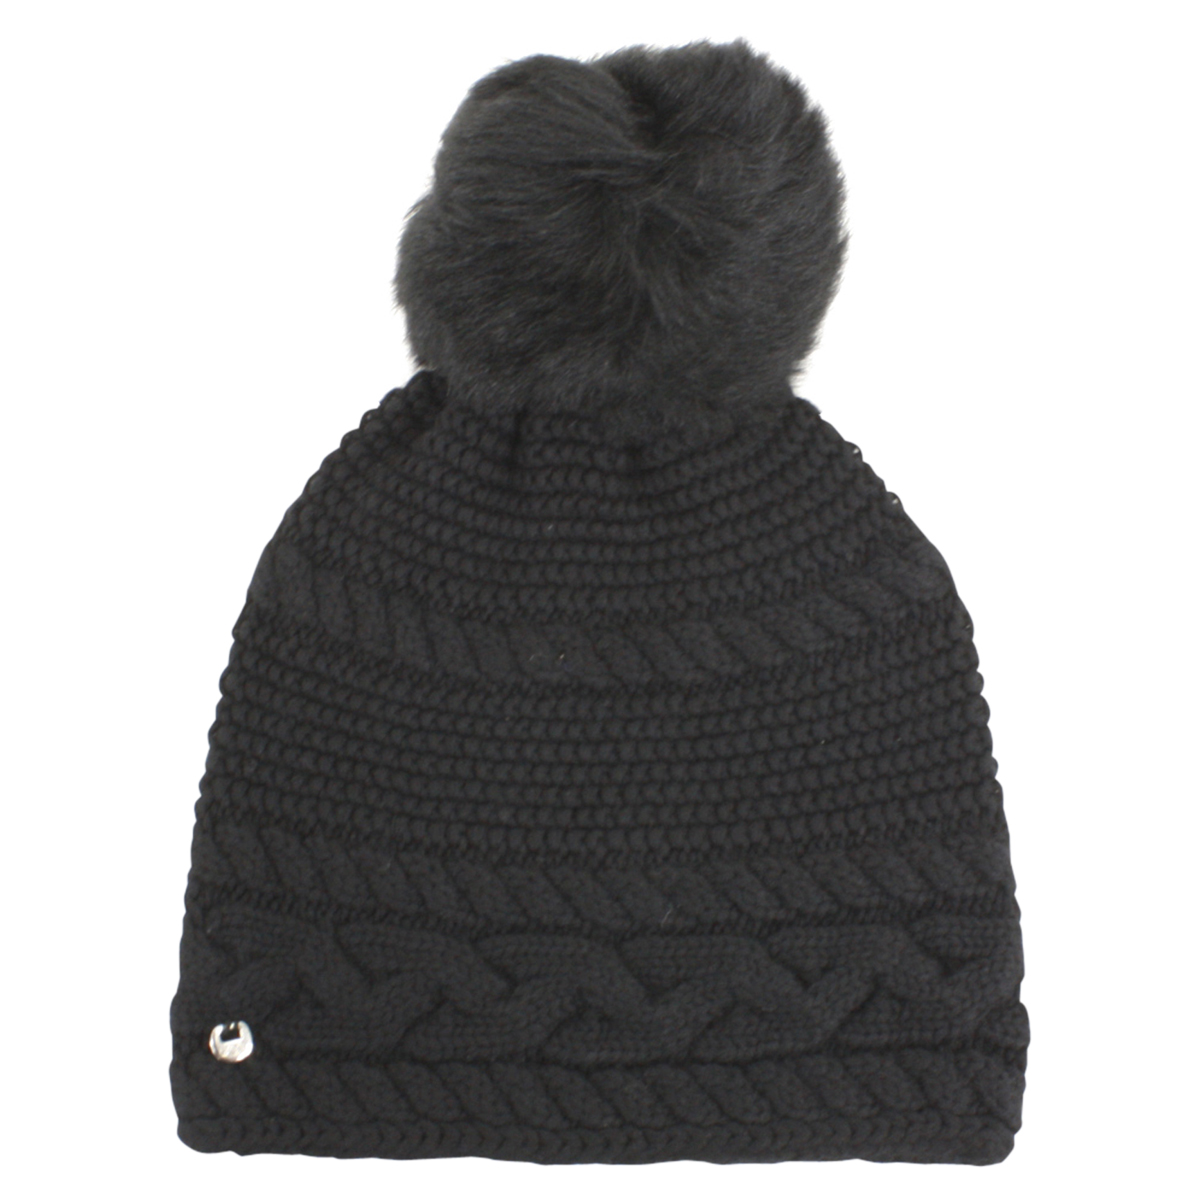 8f1a46a07a8ea Cable Knit Ugg Hat - cheap watches mgc-gas.com